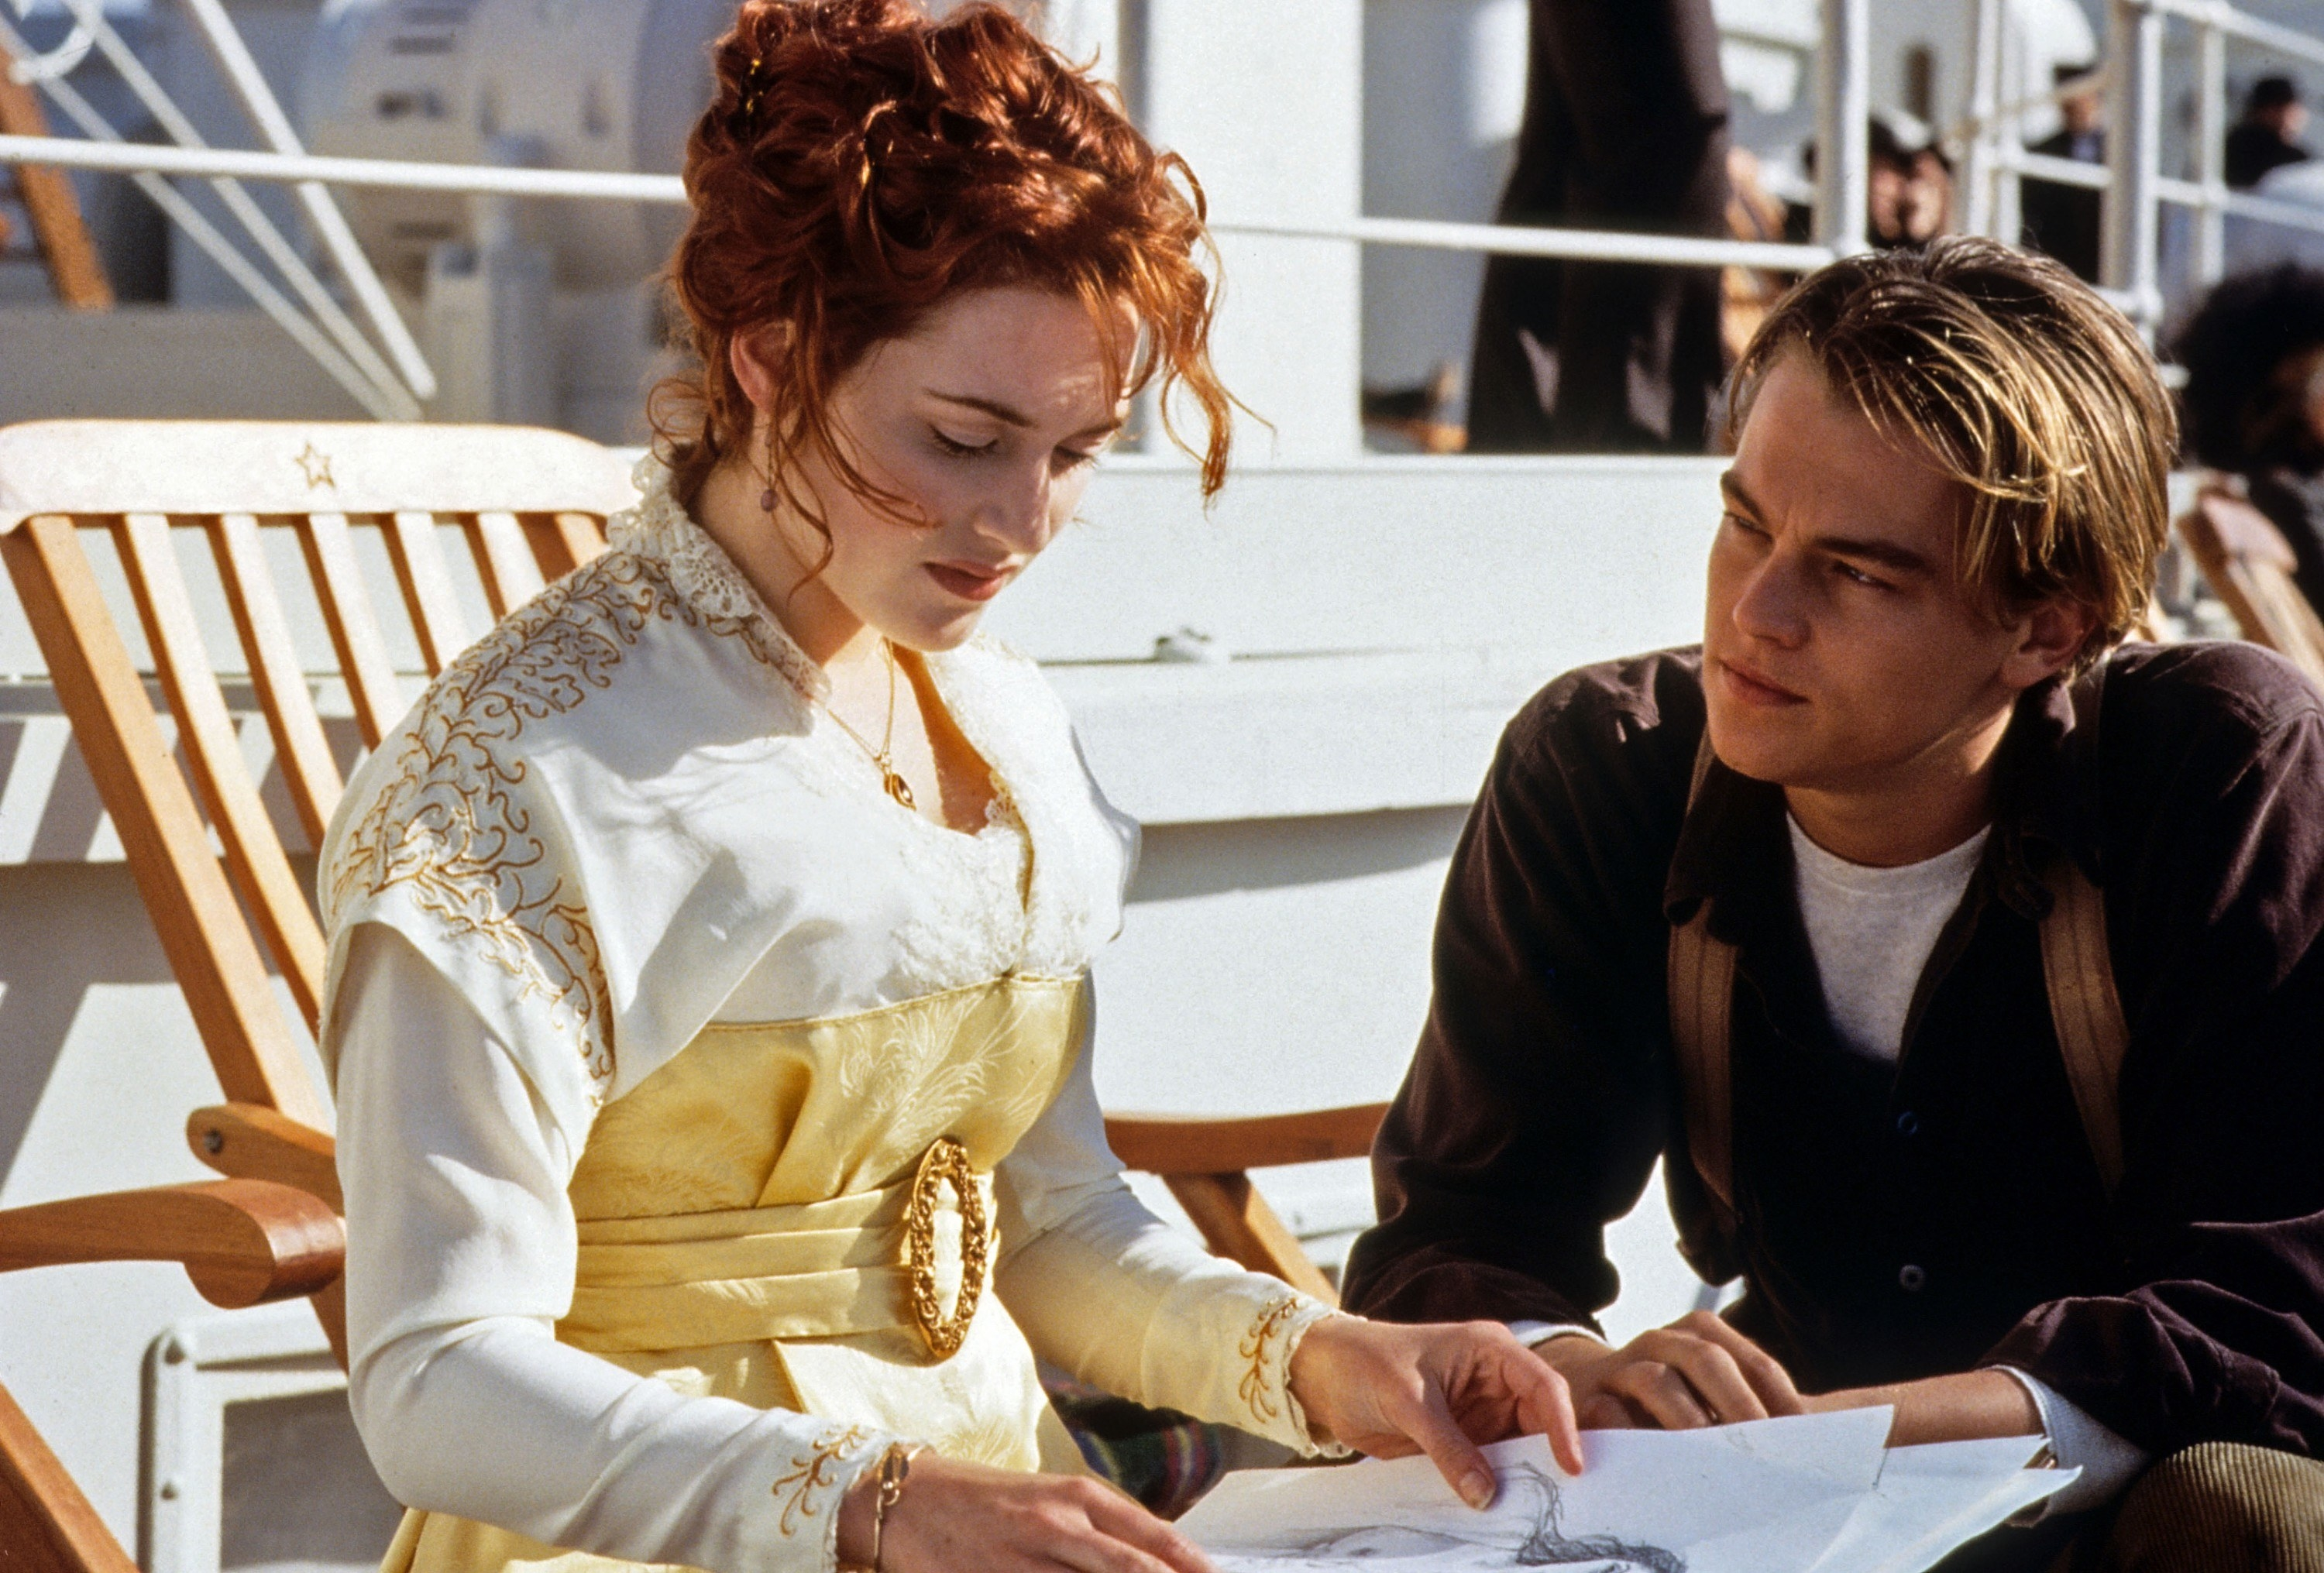 Kate Winslet shows Leonardo DiCaprio drawings while sitting down in a deck chair in the film Titanic